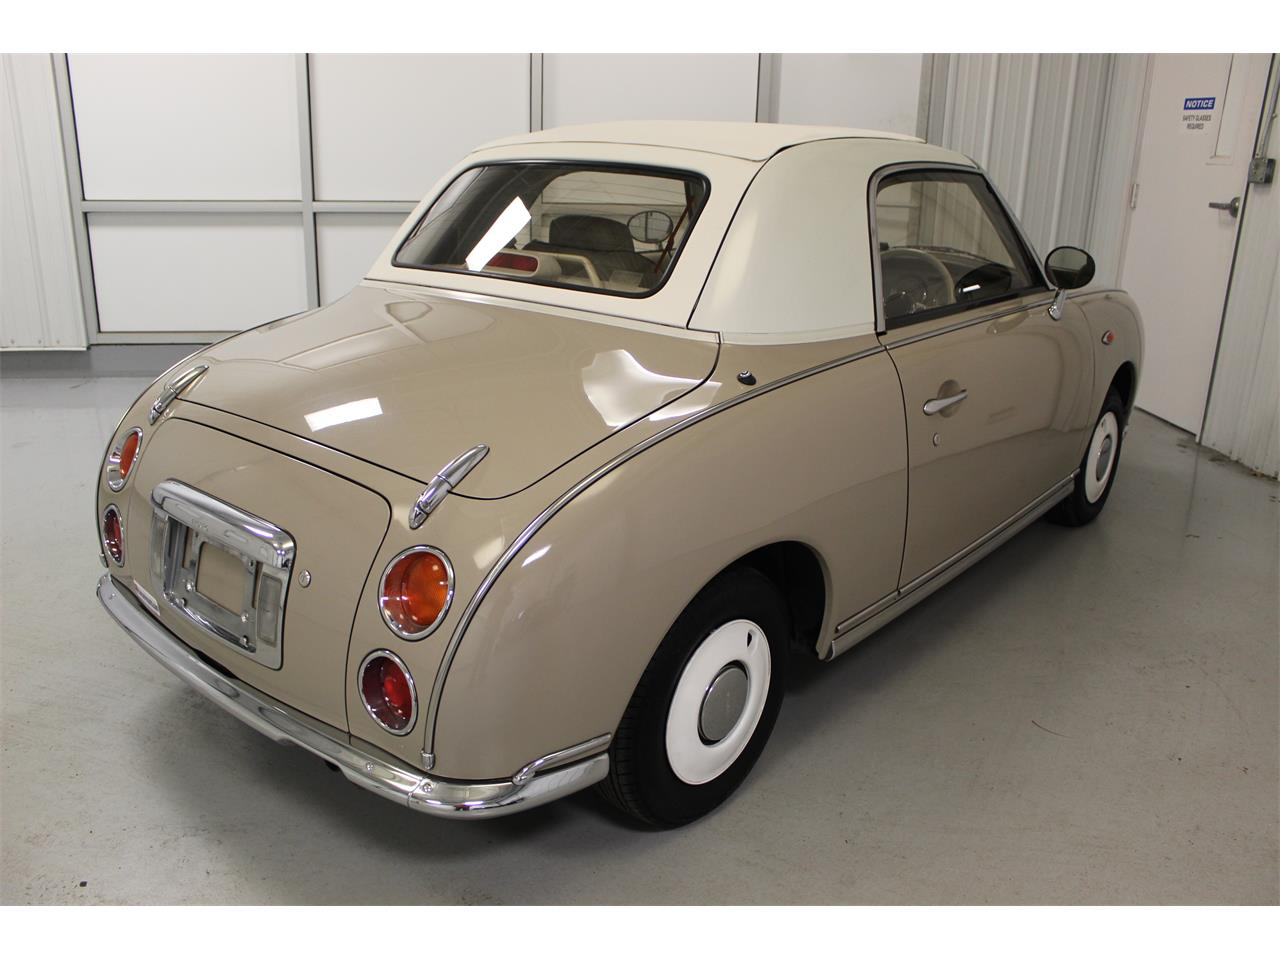 1991 Nissan Figaro for sale in Christiansburg, VA – photo 9